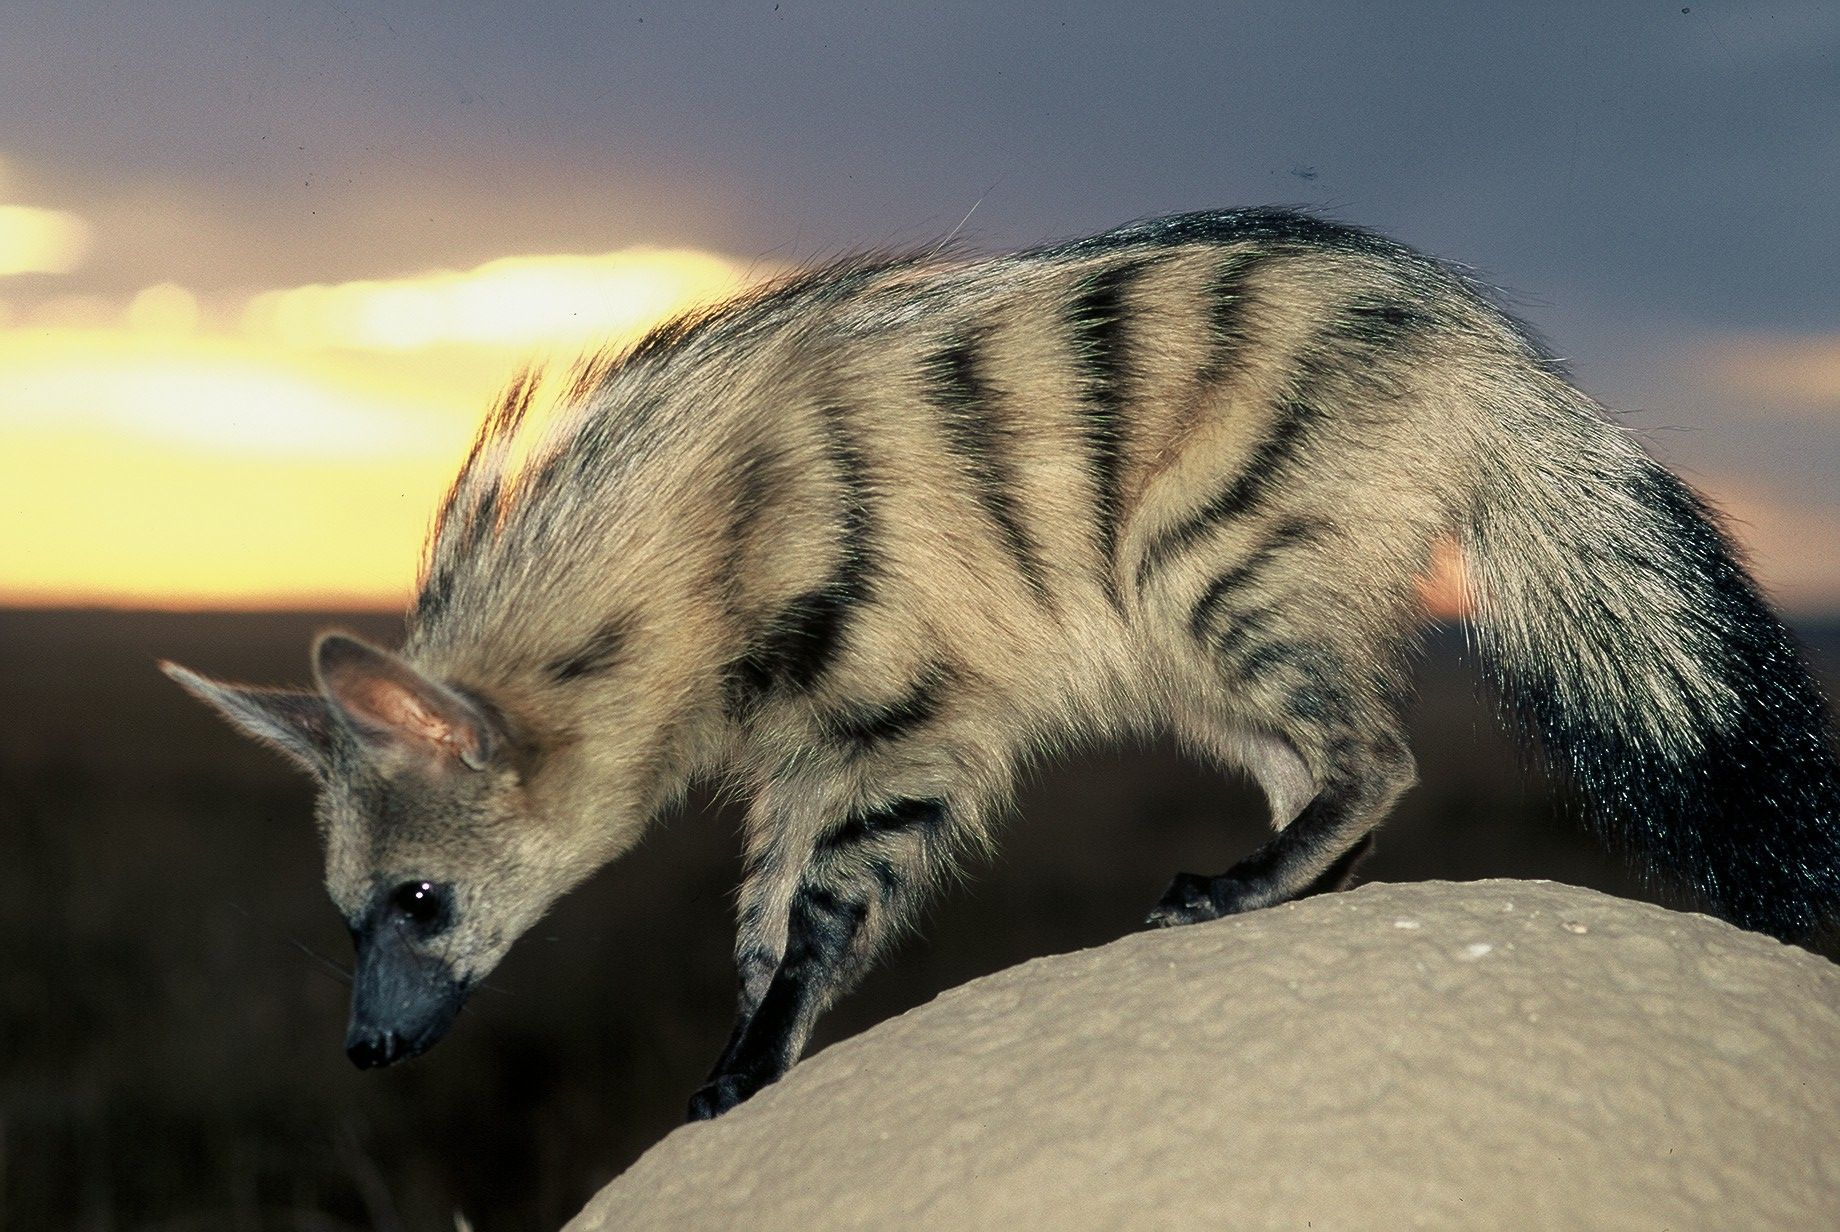 Aardwolf the smallest and shyest of the four hyena